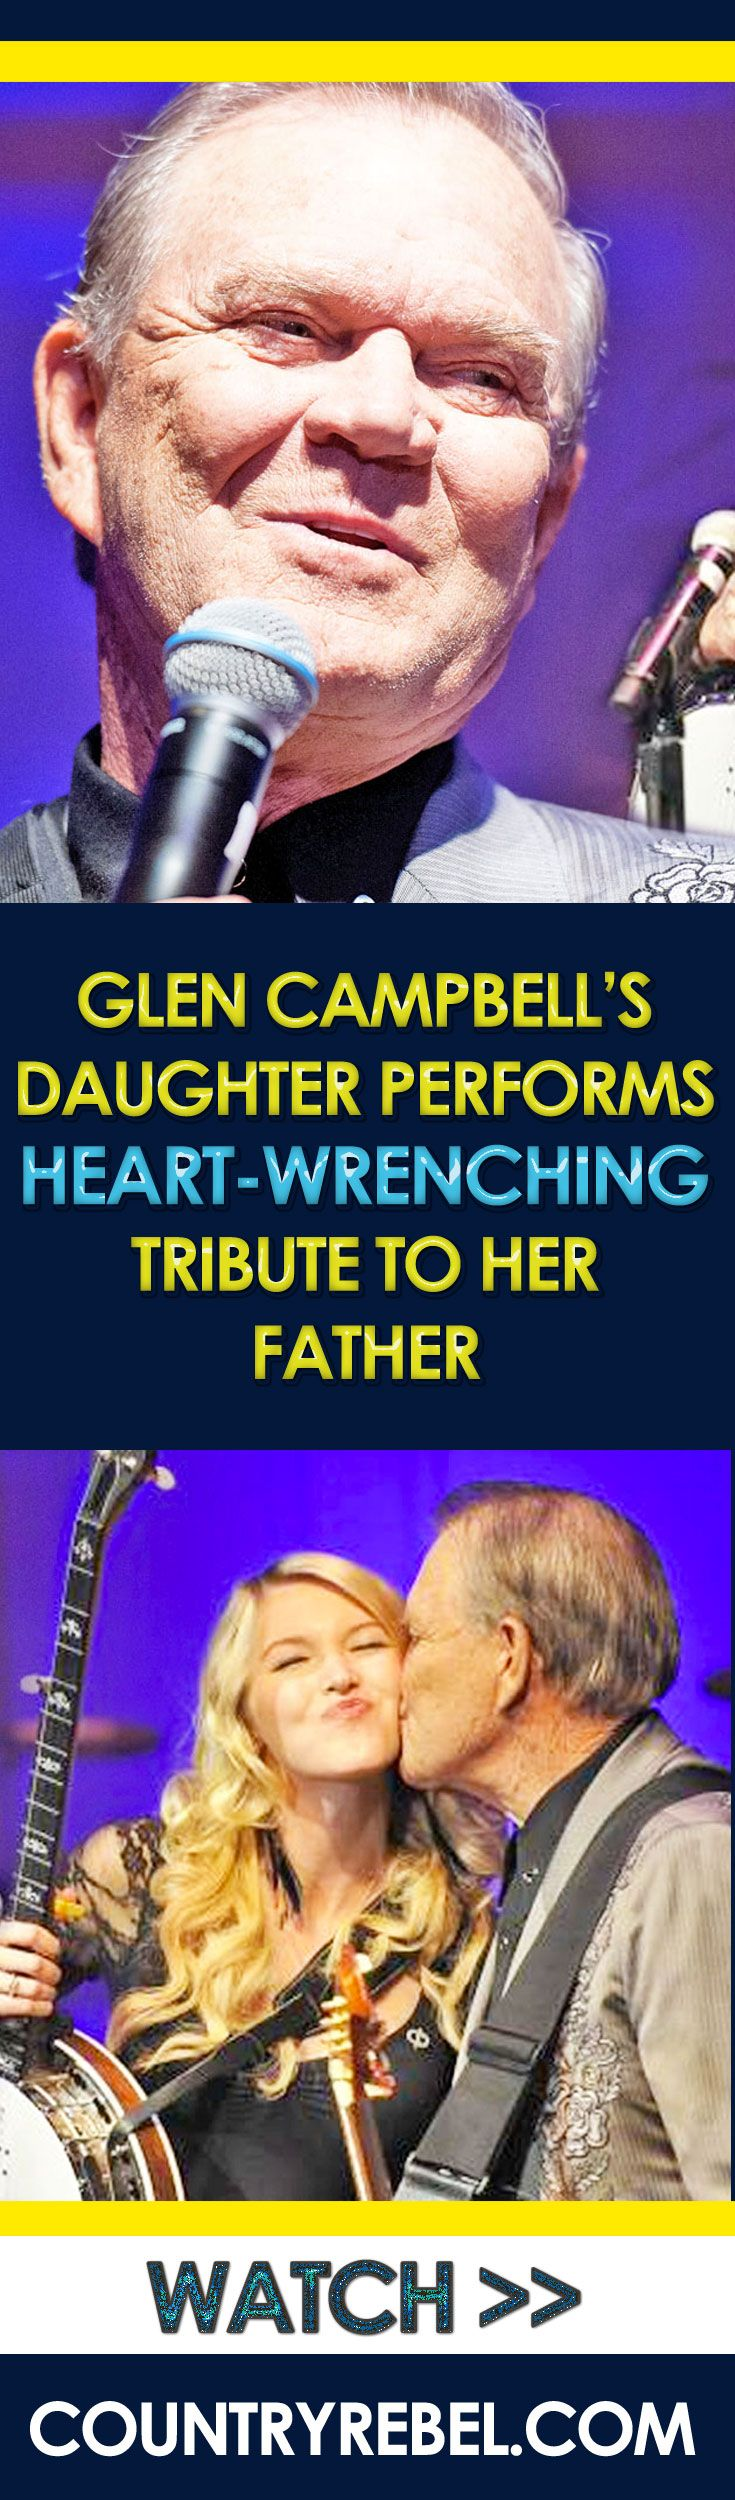 Glen Campbell's Daughter Performs Heart-Wrenching Tribute To Her Father